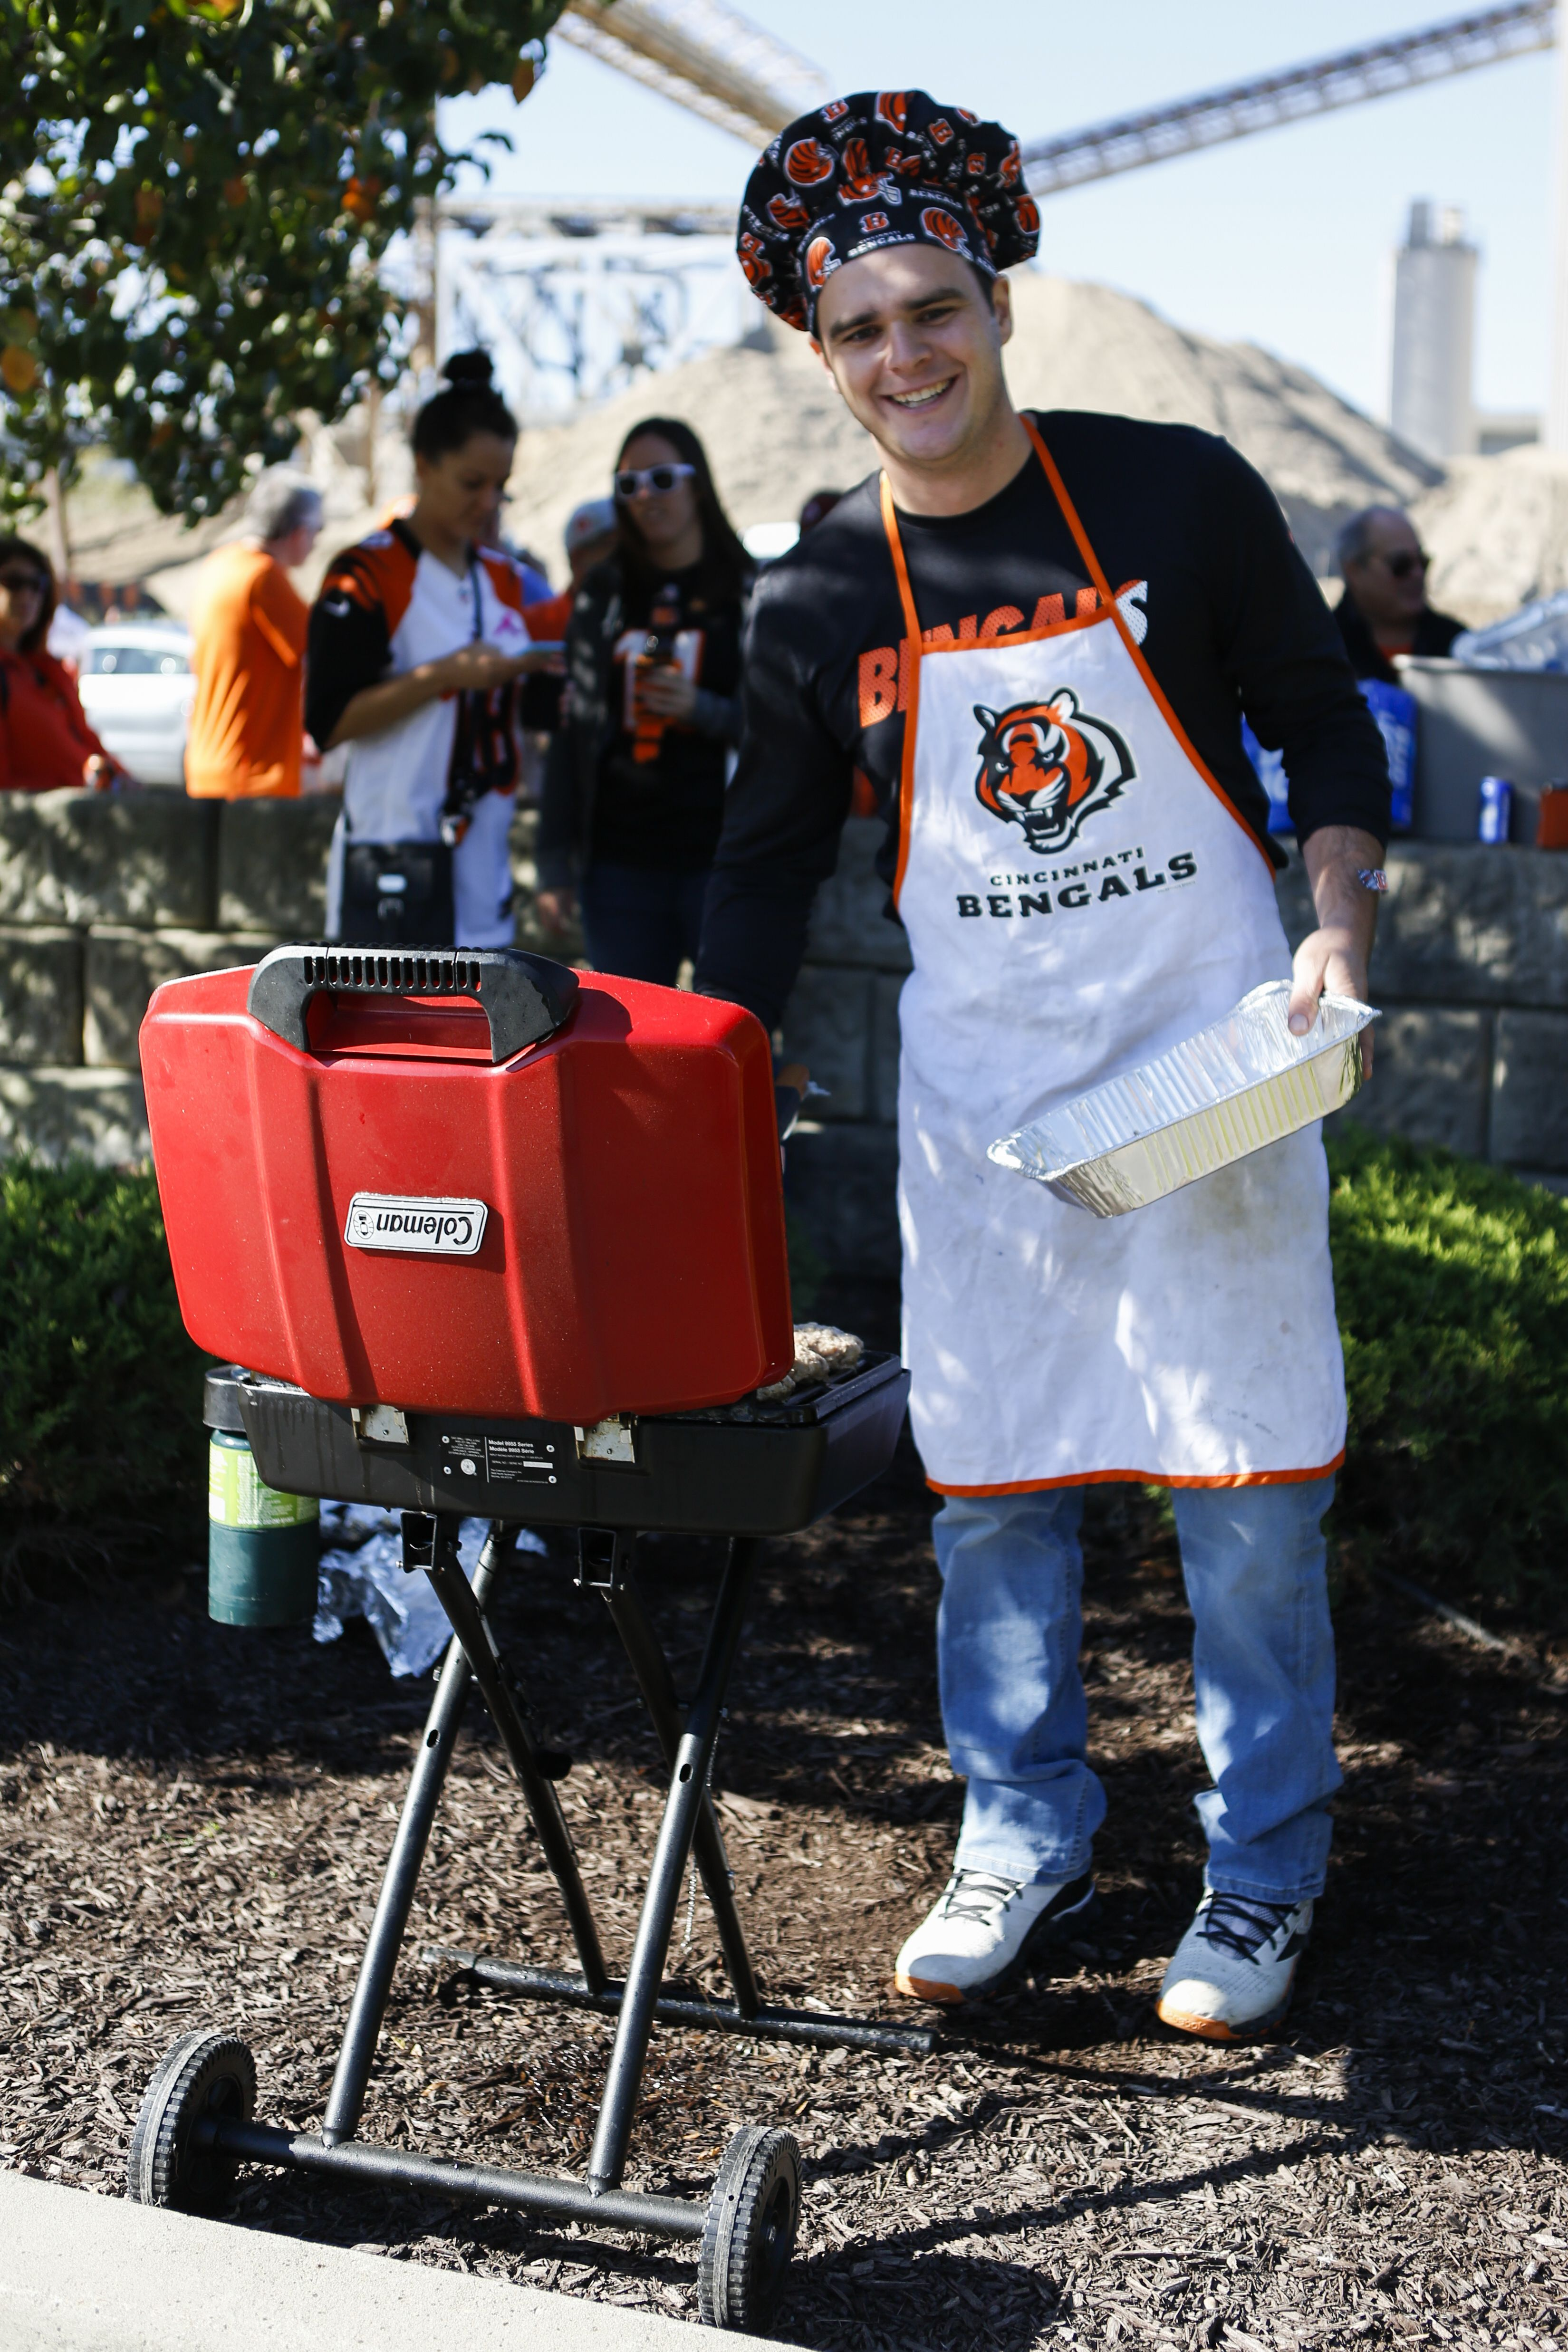 Your Week 7 Cincinnati bengals grill master ladies and